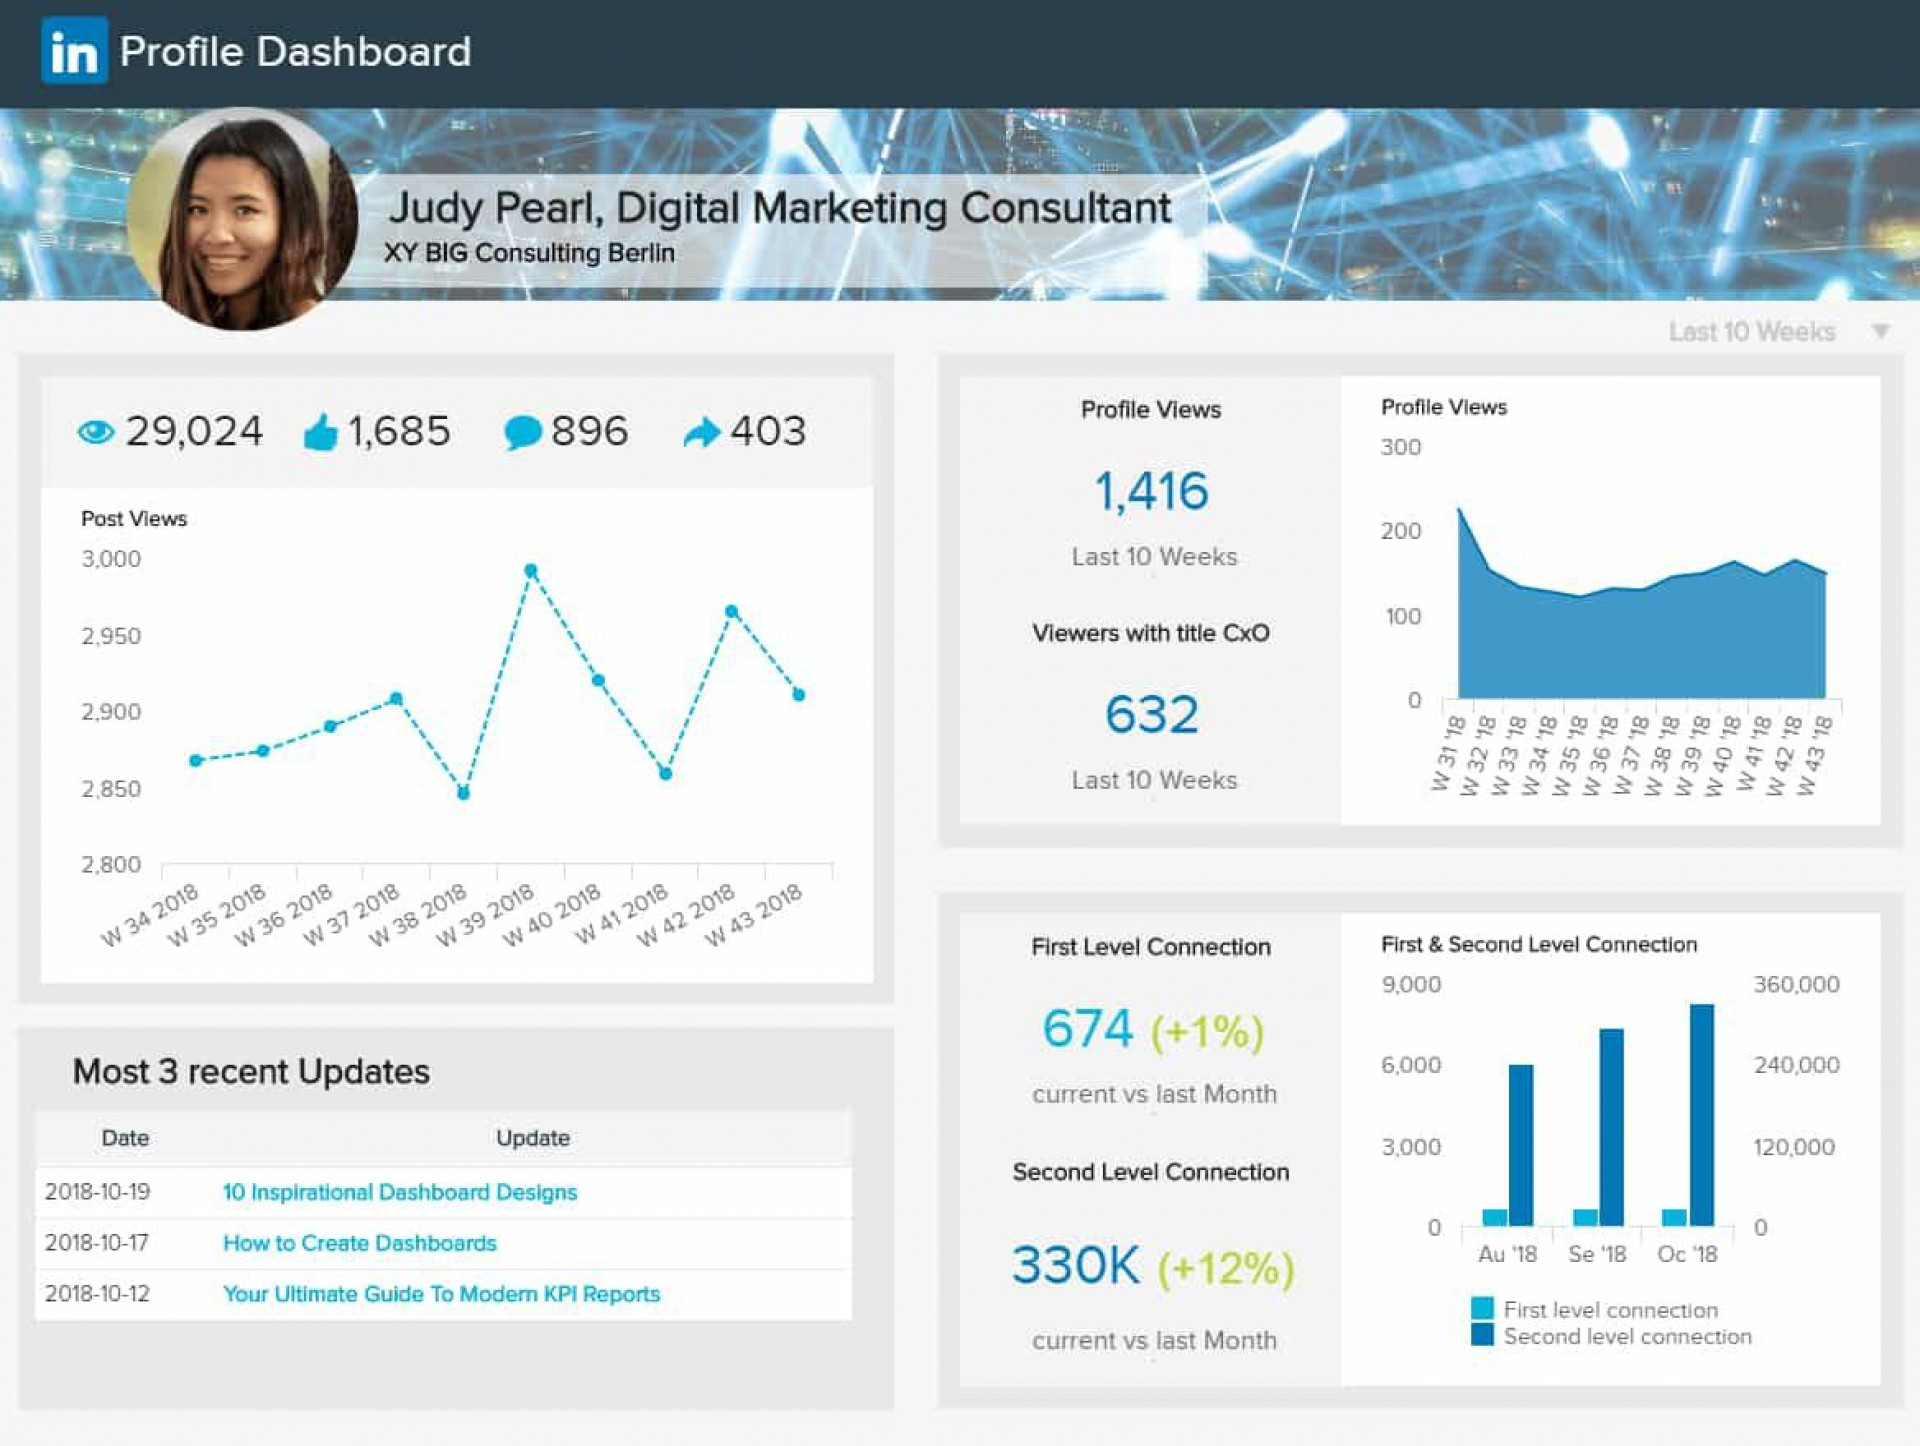 007 Incredible Social Media Report Template Picture  Powerpoint Free Download Analytic Word1920